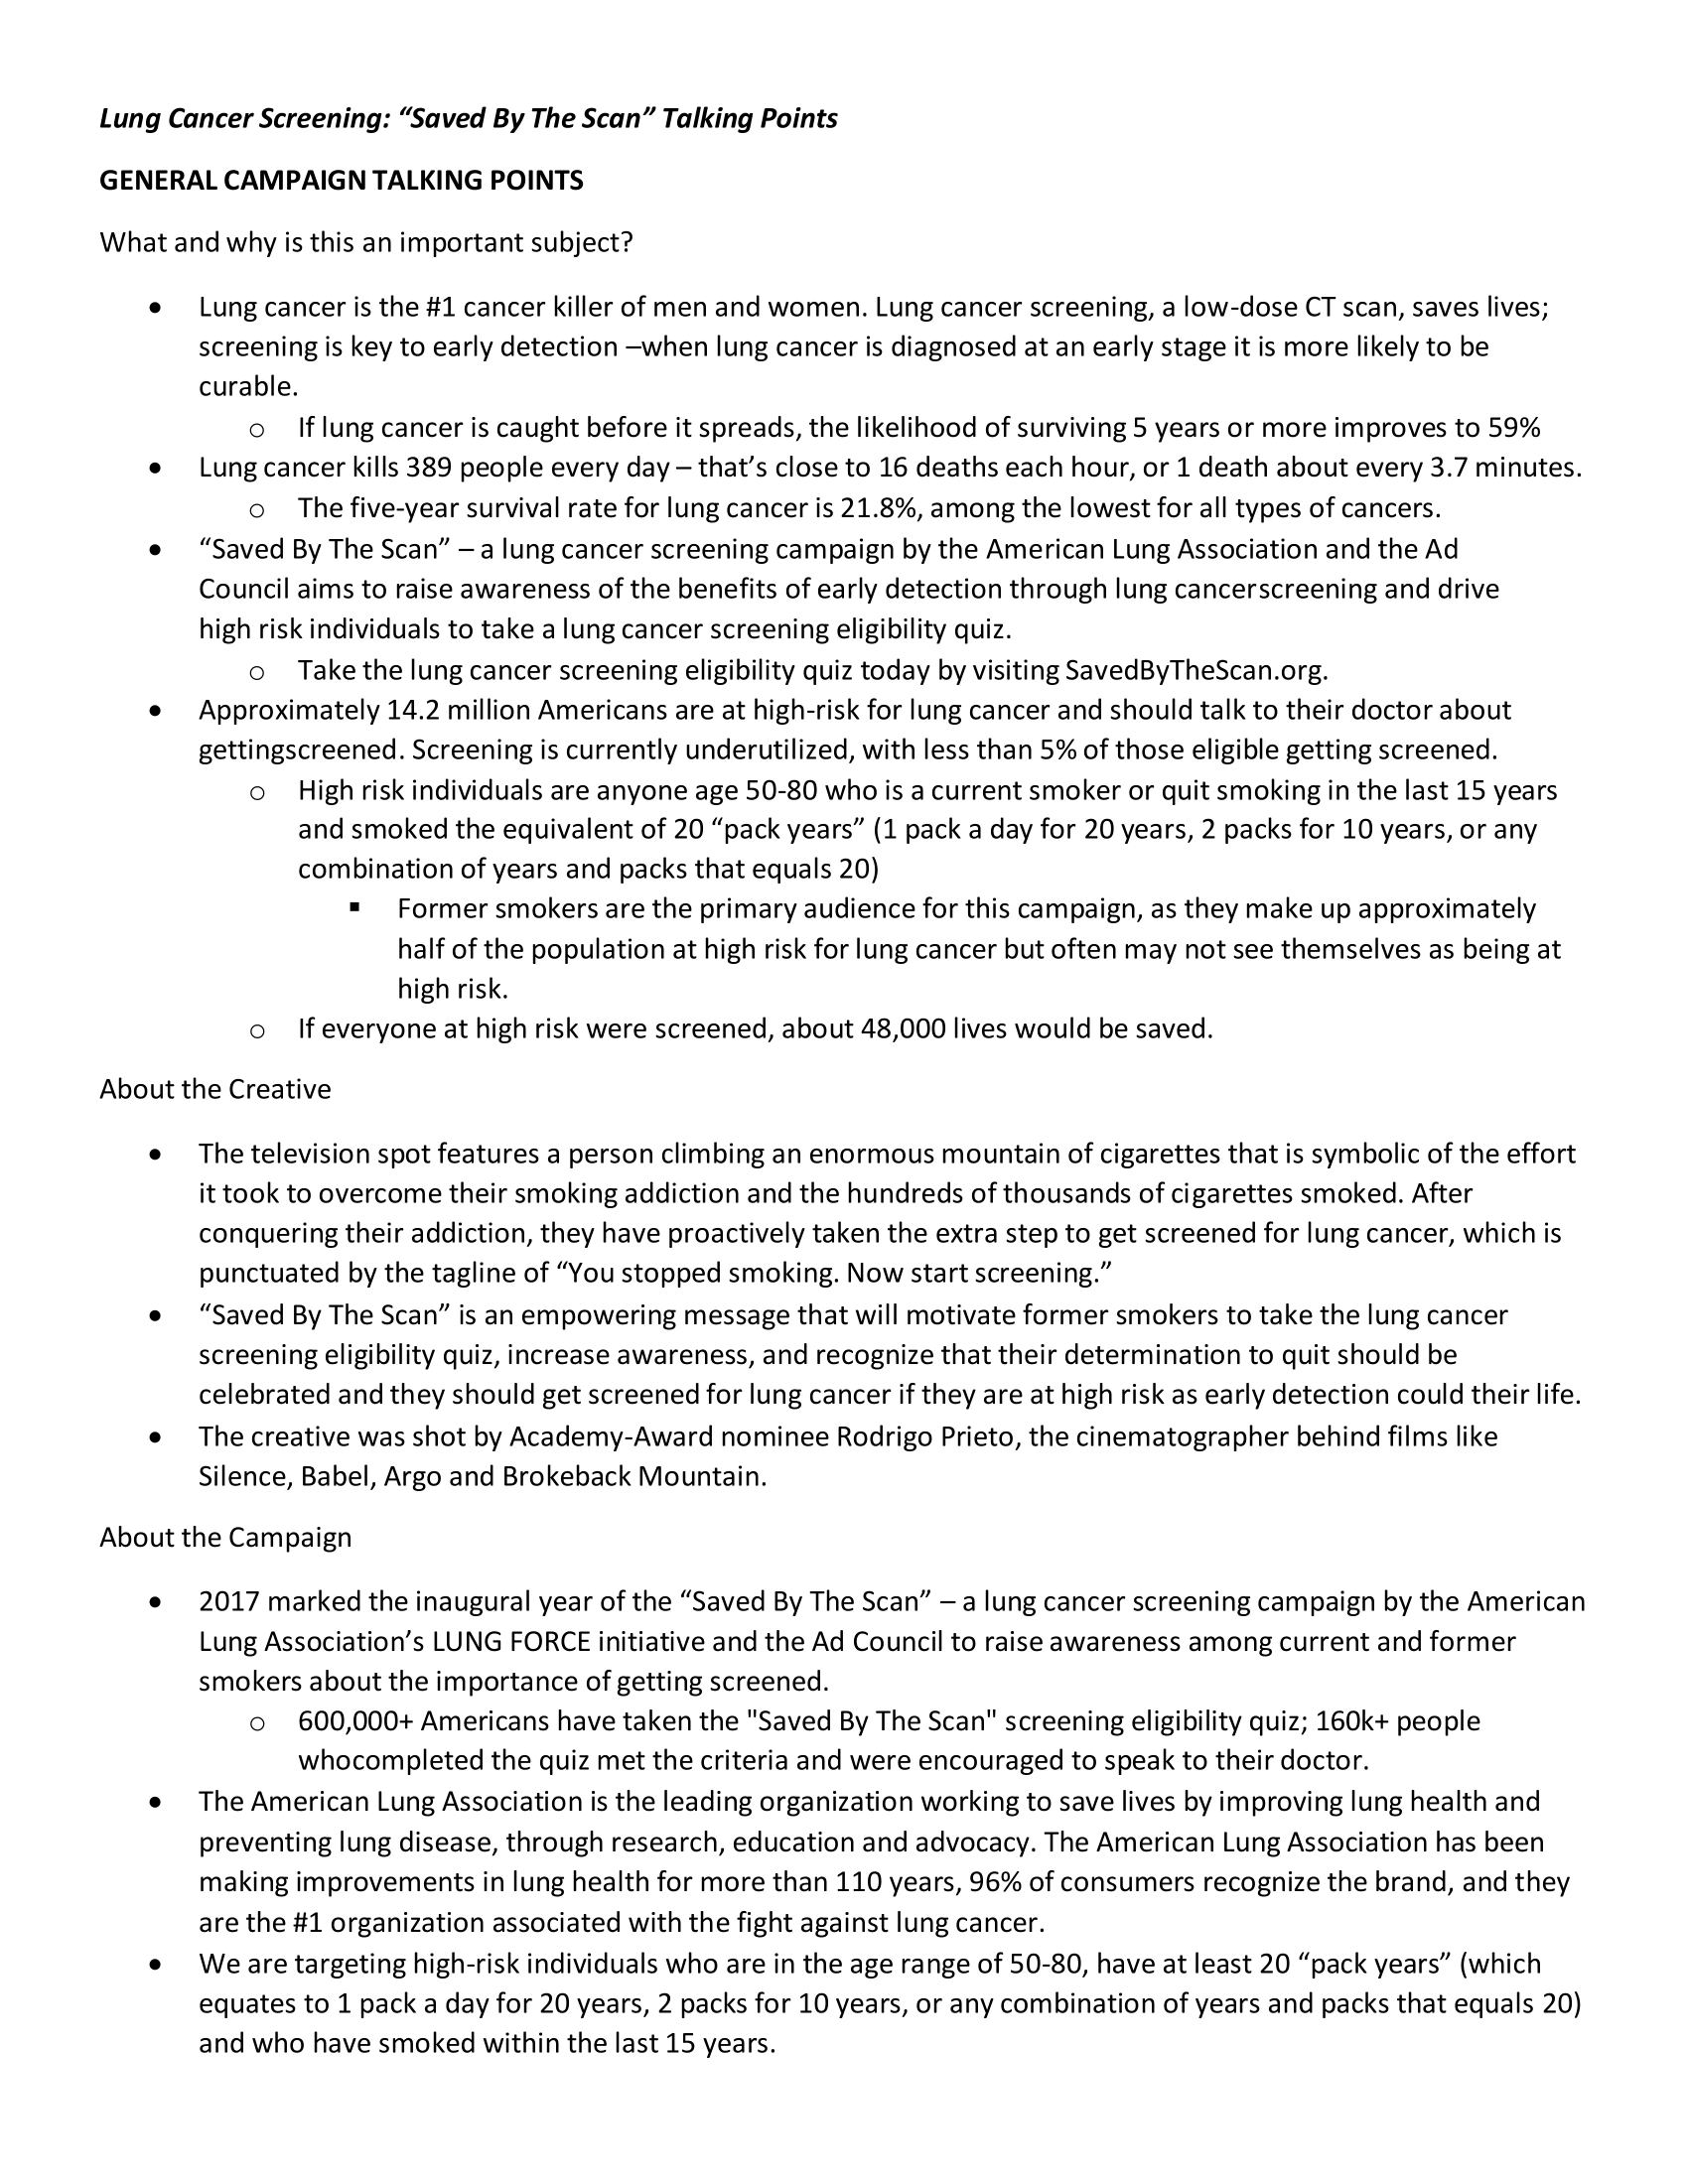 Saved By The Scan Talking Points_4.28.21-1